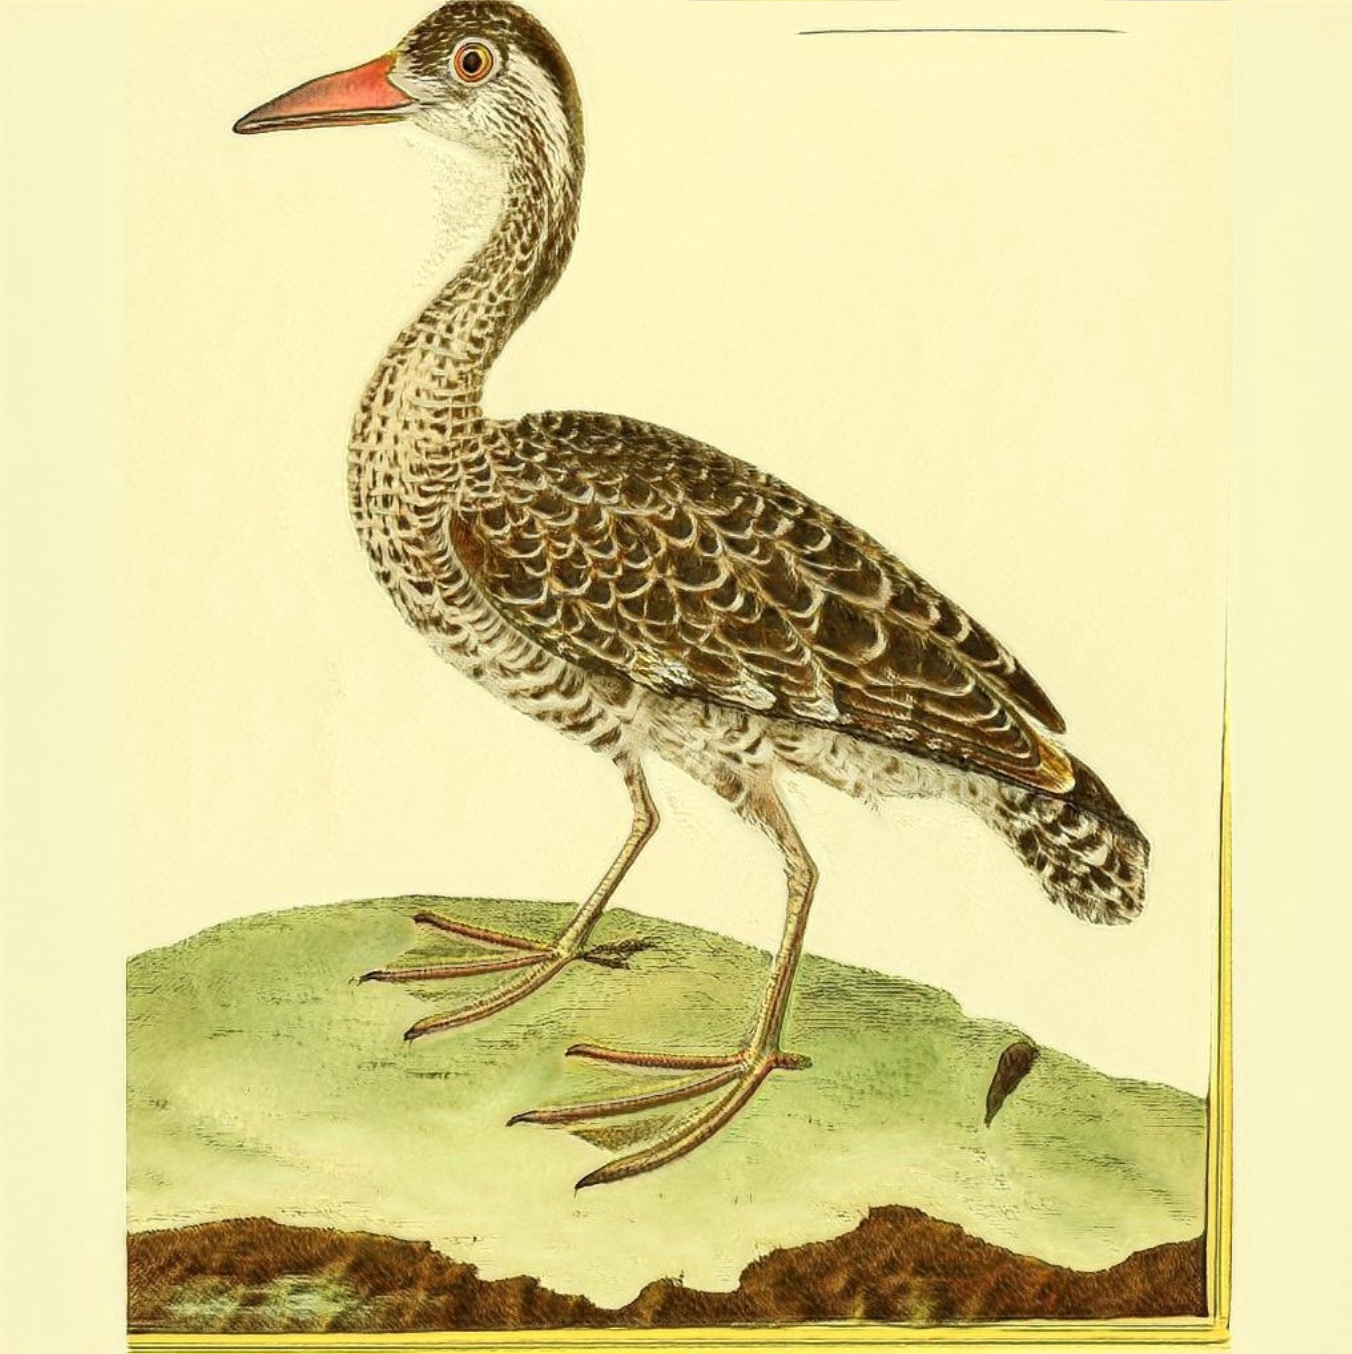 A single screenshot of an image produced by the StyleGAN. This looks like a real bird illustration. Its body is almost duck-like and it has two eyes and a beak and its feathers look like a real feather texture. It has two legs and it's standing on some grass. It does look very happy and alert though…